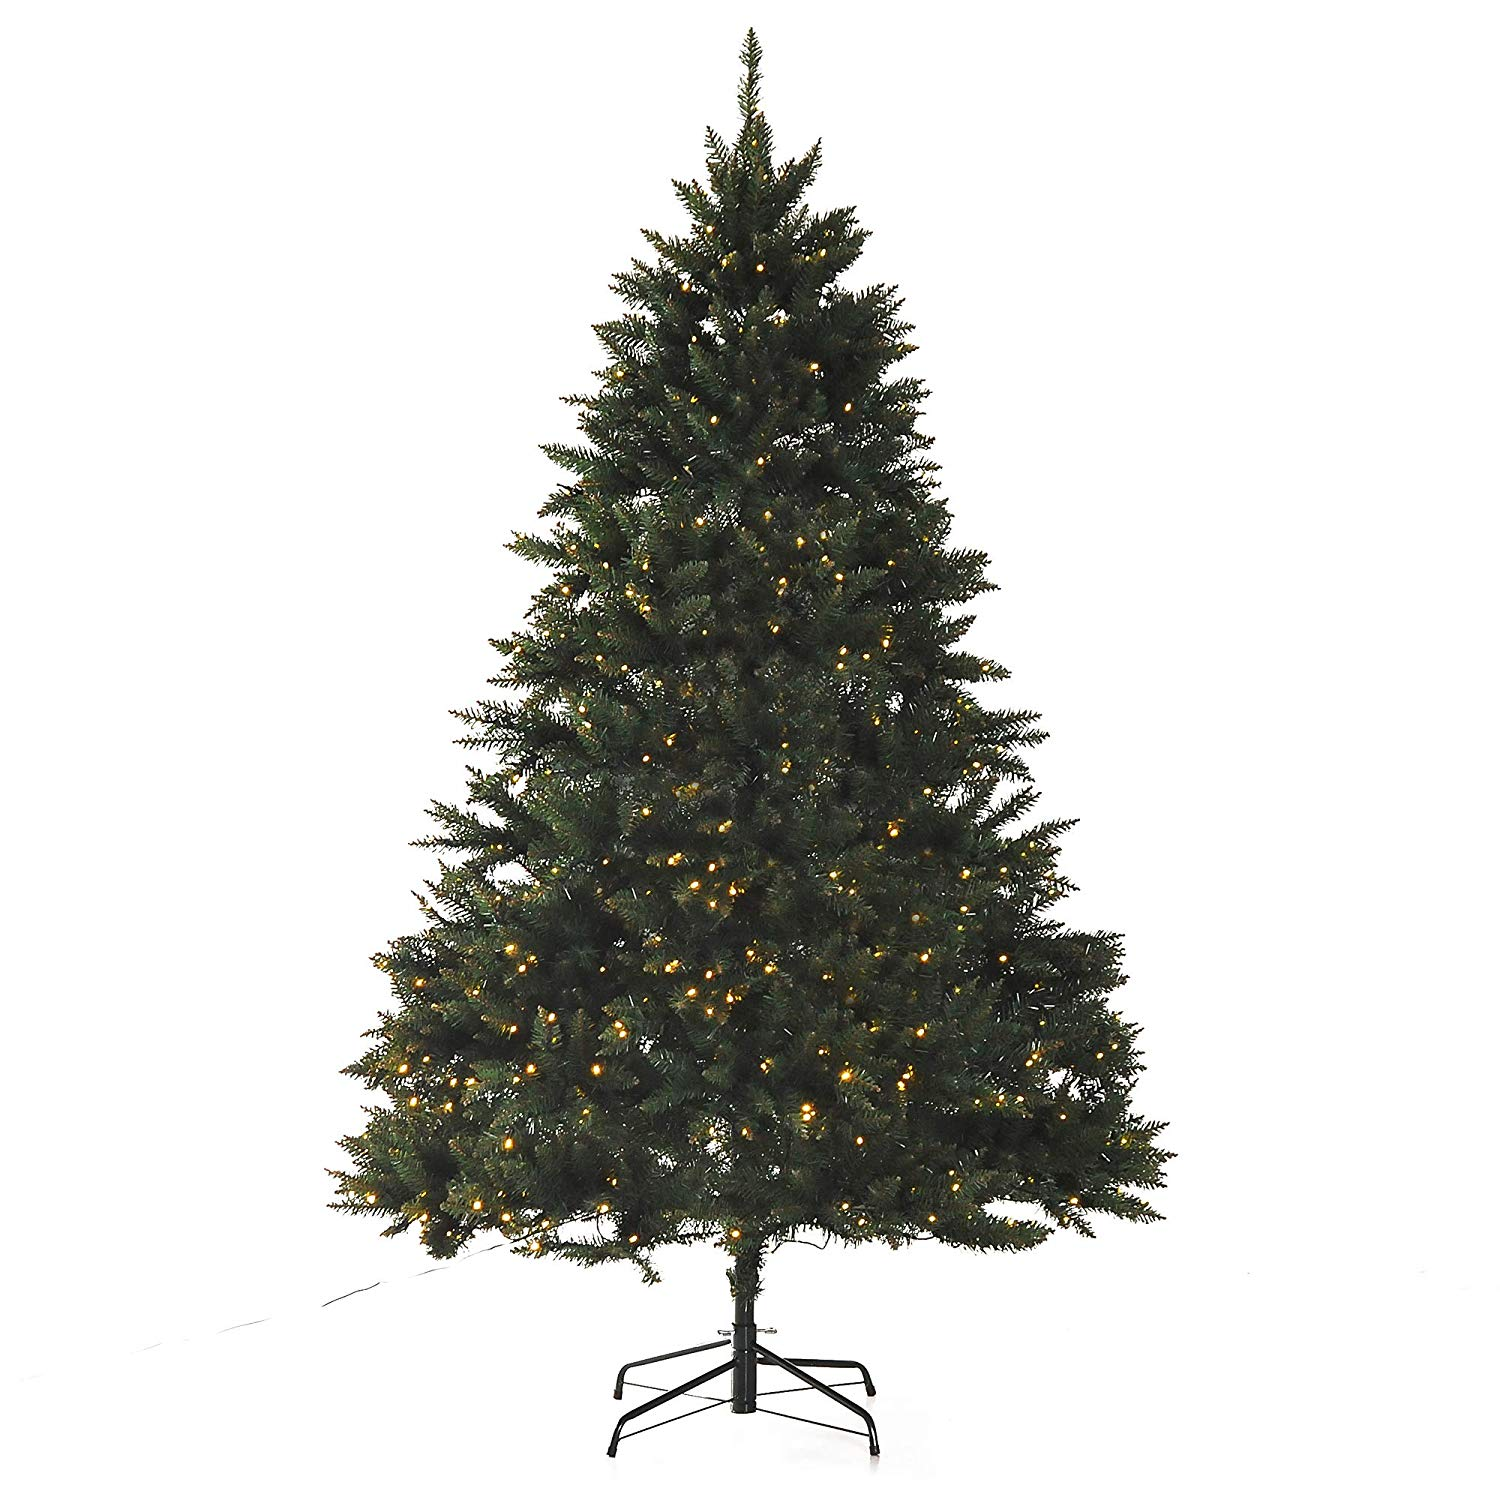 Image of £89.99 HOMCOM Artificial Christmas Spruce Tree, 2.1m-Green / 2.1m 7ft Pre-Lit Tree Xmas 700 Warm White LED Holiday Décor Metal Stand Clear W/ 830-192 5056029806890